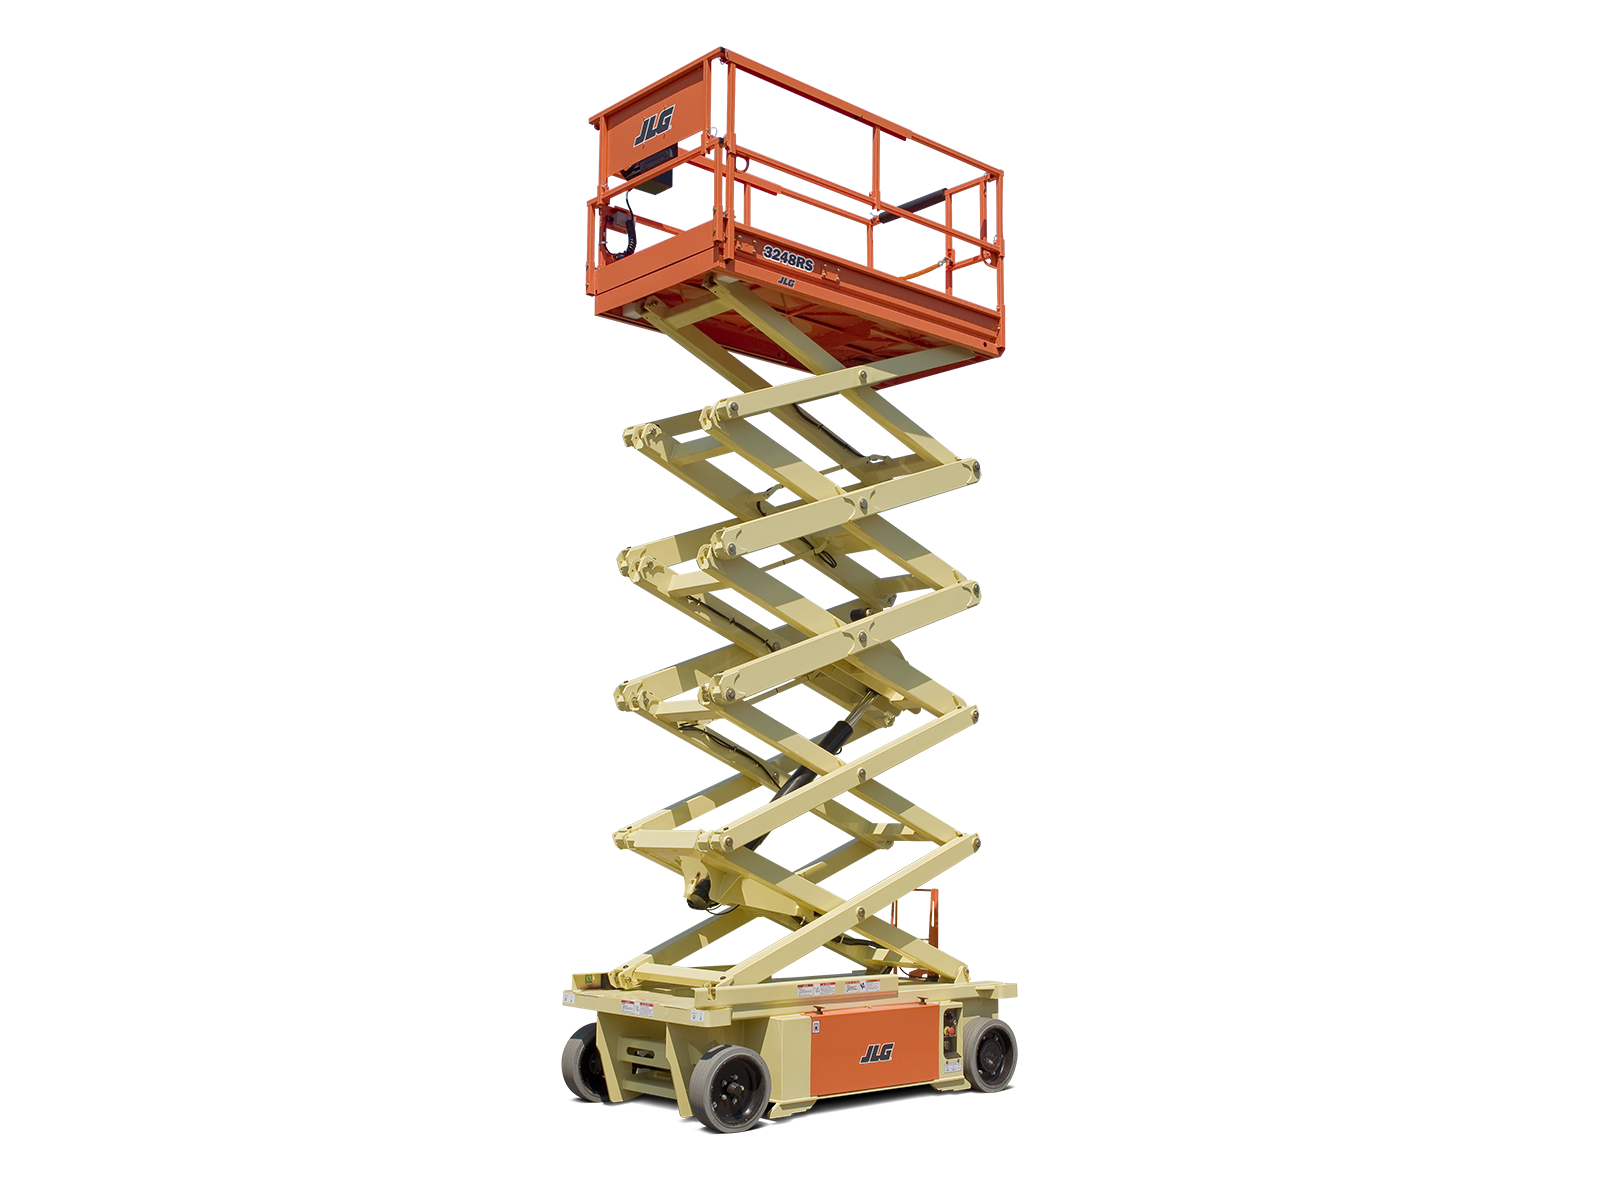 Jlg 1930es Scissor Lift Wiring Diagram Guide And Troubleshooting Skyjack Diagrams 3248rs Rs Series Electric Rh Com 1932e2 Motor